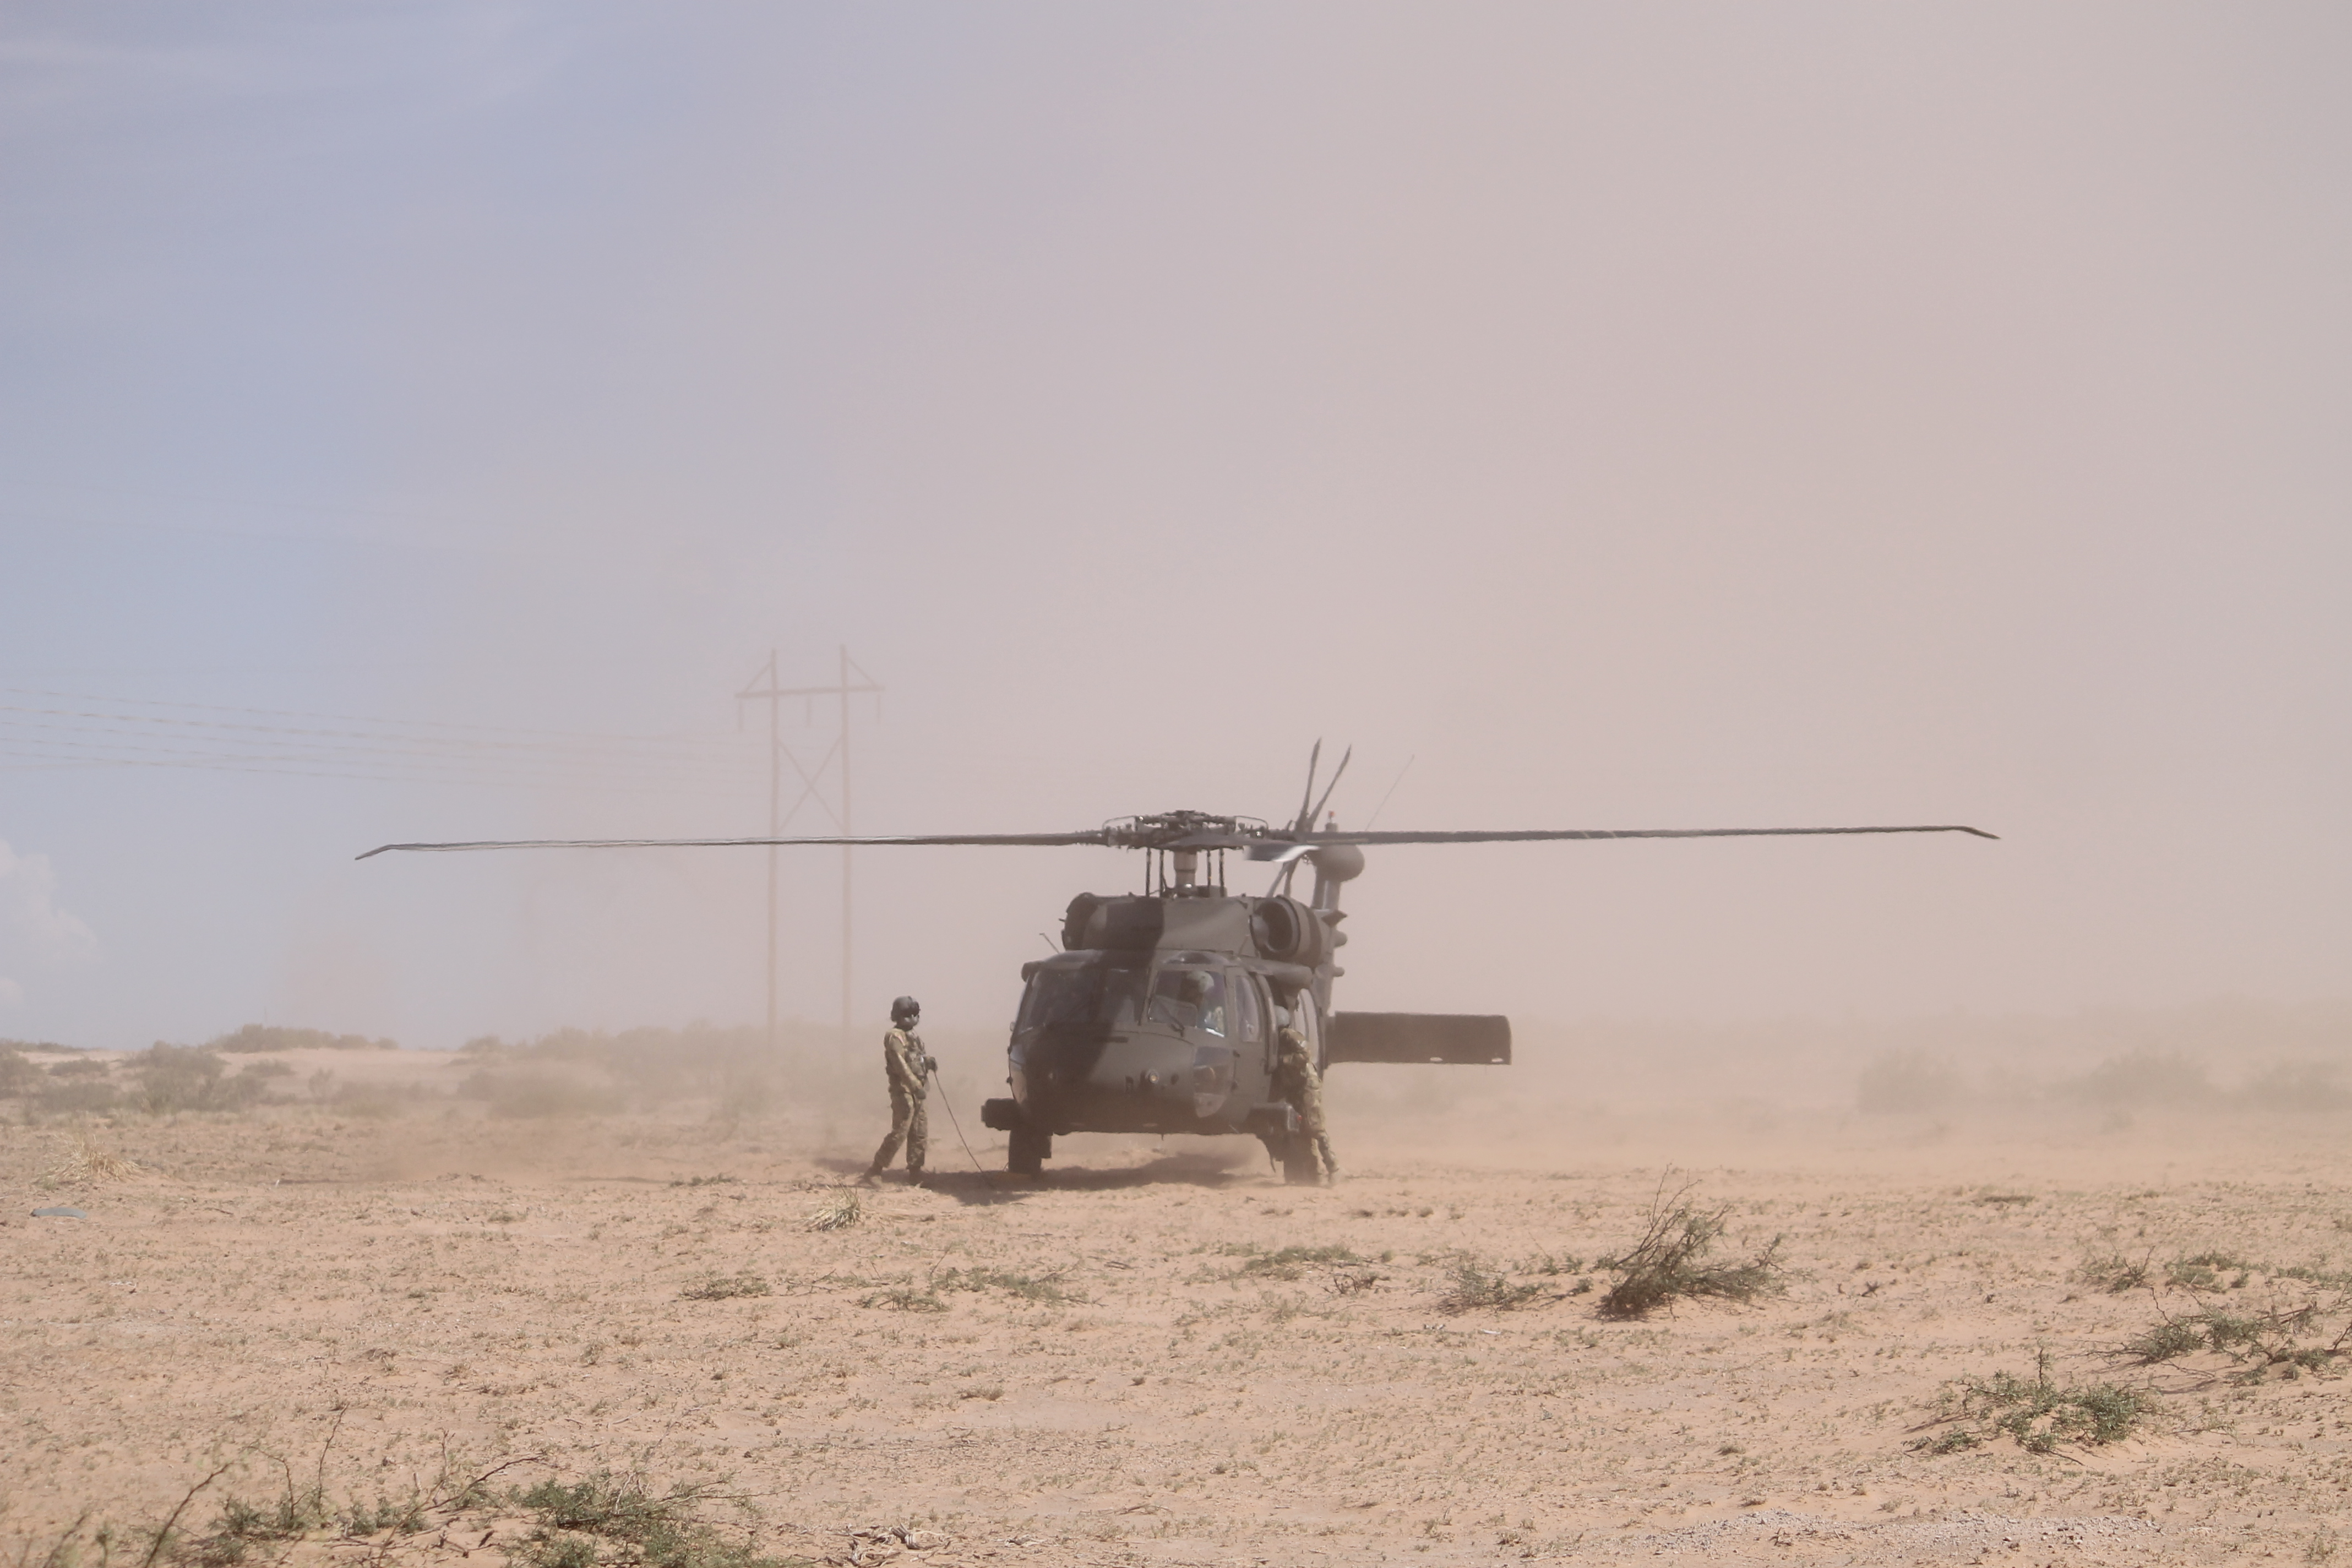 A Black Hawk lands in the desert just outside of the 2nd BCT's TOC, escorting military personnel including U.S. Army Training and Doctrine Command commander Gen. David Perkins. (Jen Judson/Staff)